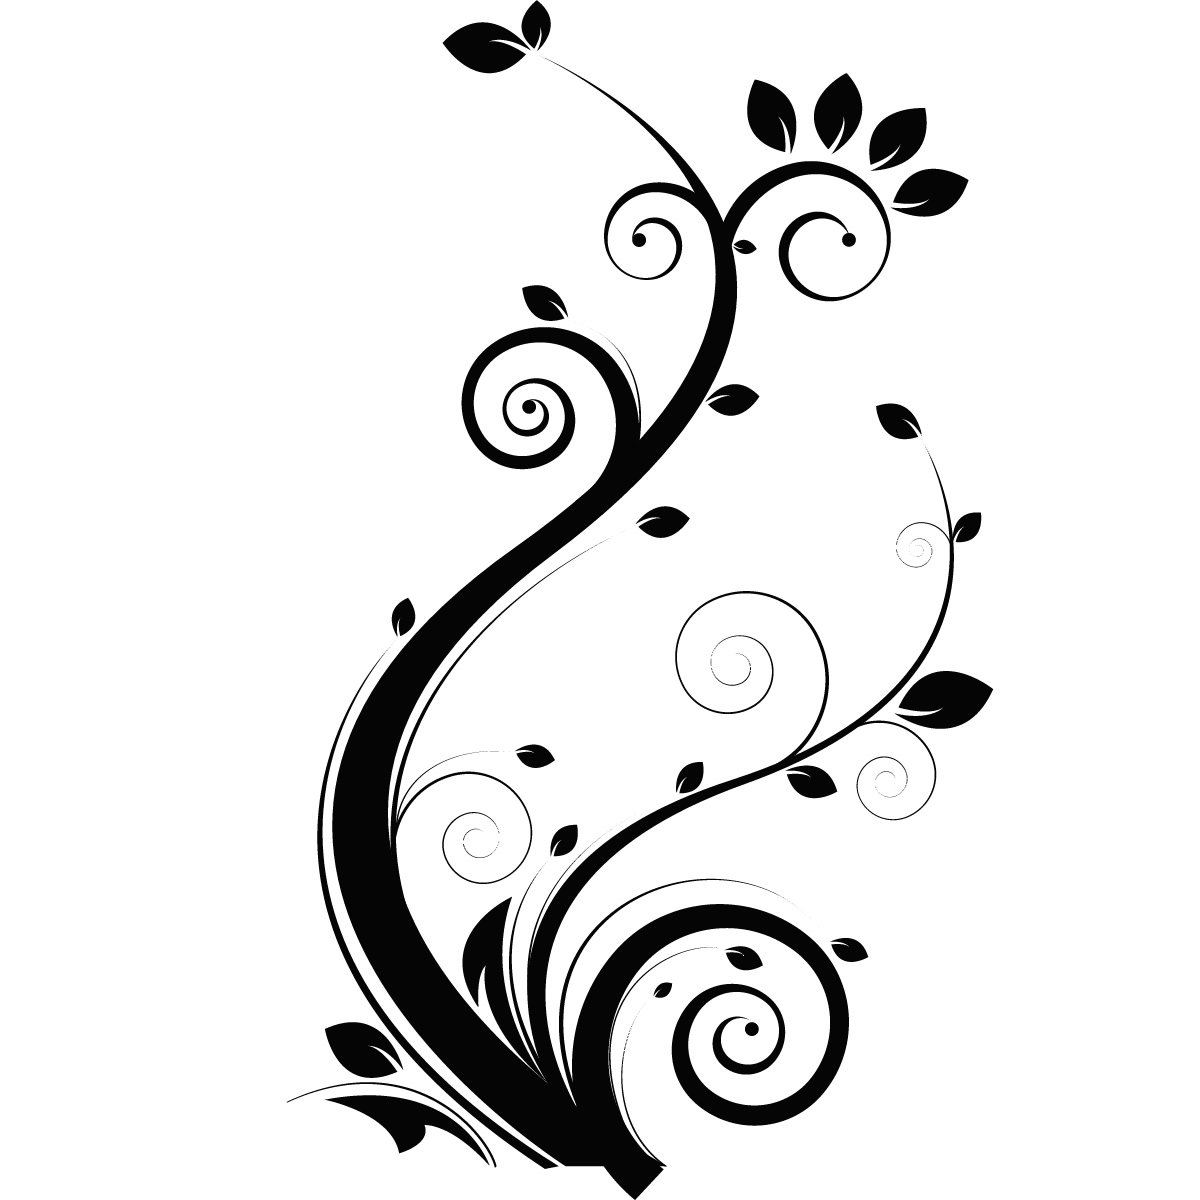 wall stickers flowers floral clipart decal leaves line drawing sticker transfers decor vine flower decals leaf clip vinyl swirl trees